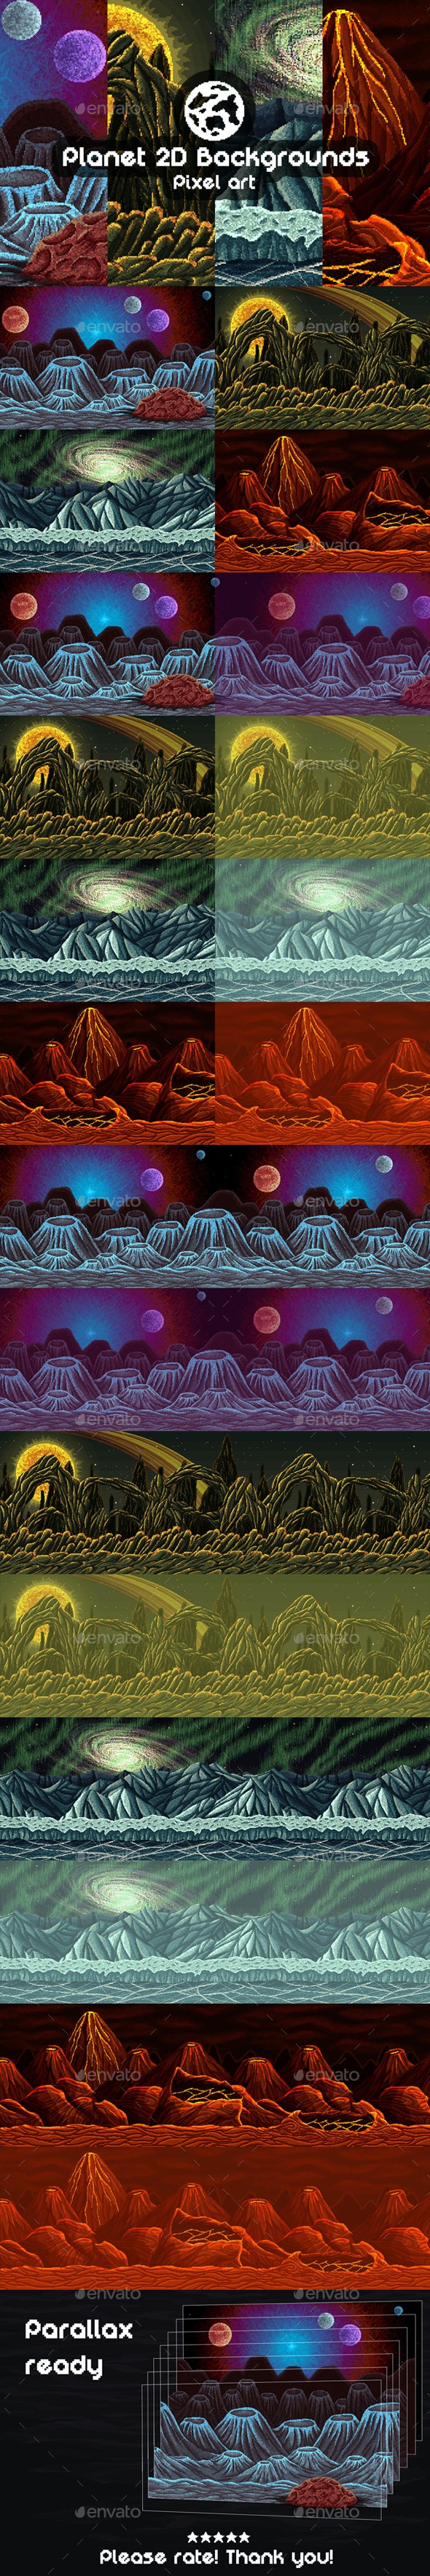 2D Game Planet Backgrounds Pixel Art - Backgrounds Game Assets